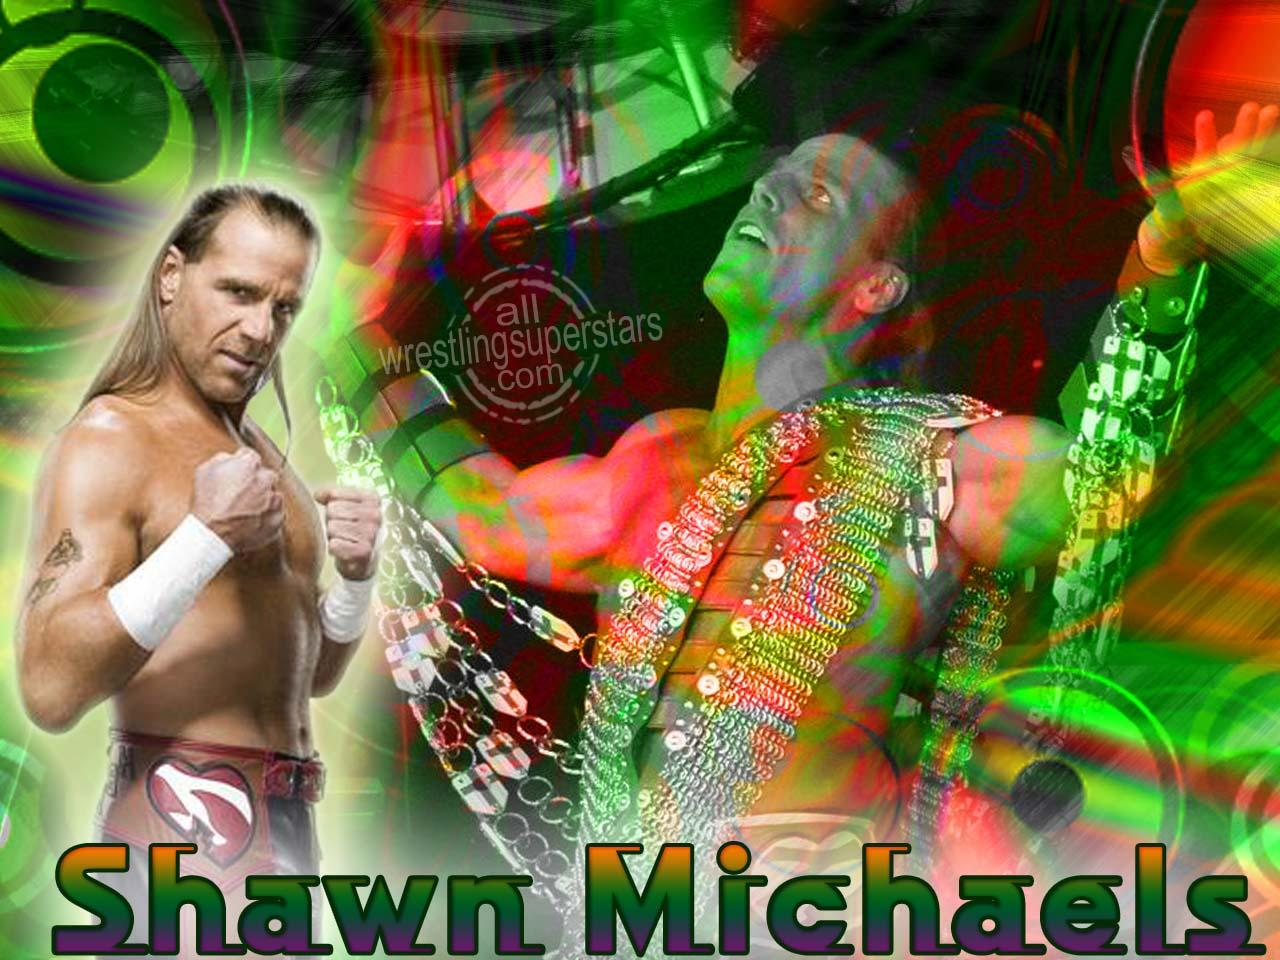 Shawn Michael Wallpapers WWE Superstars 1280x960